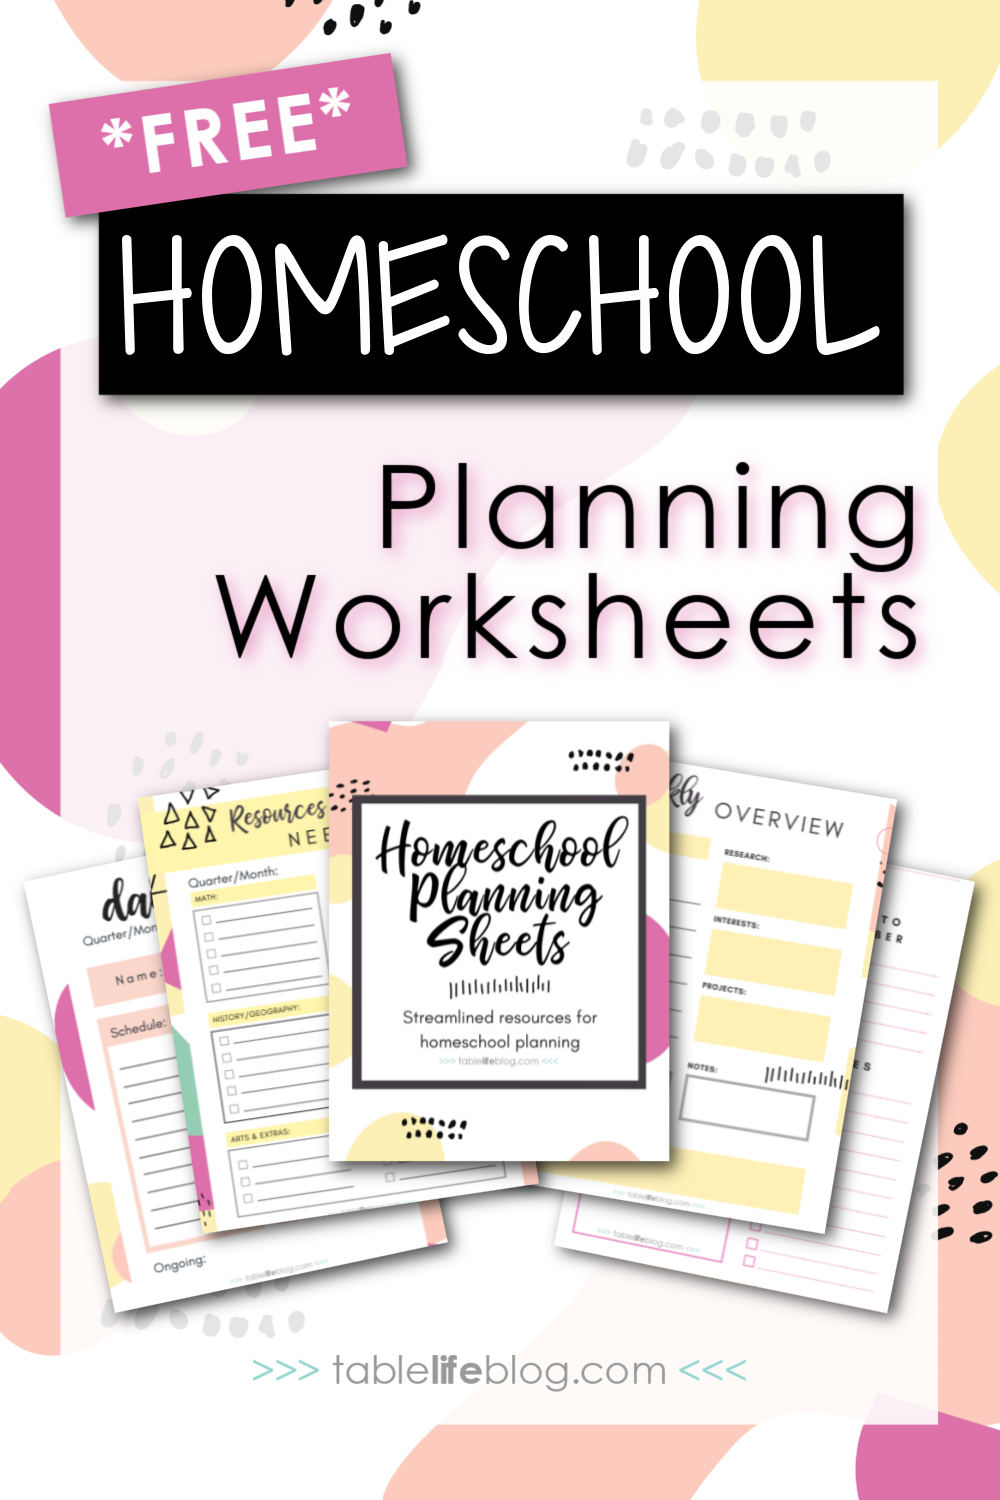 Looking for a streamlined homeschool planning process, but don't know where to start? These Simplified Homeschool Planning Worksheets can help.